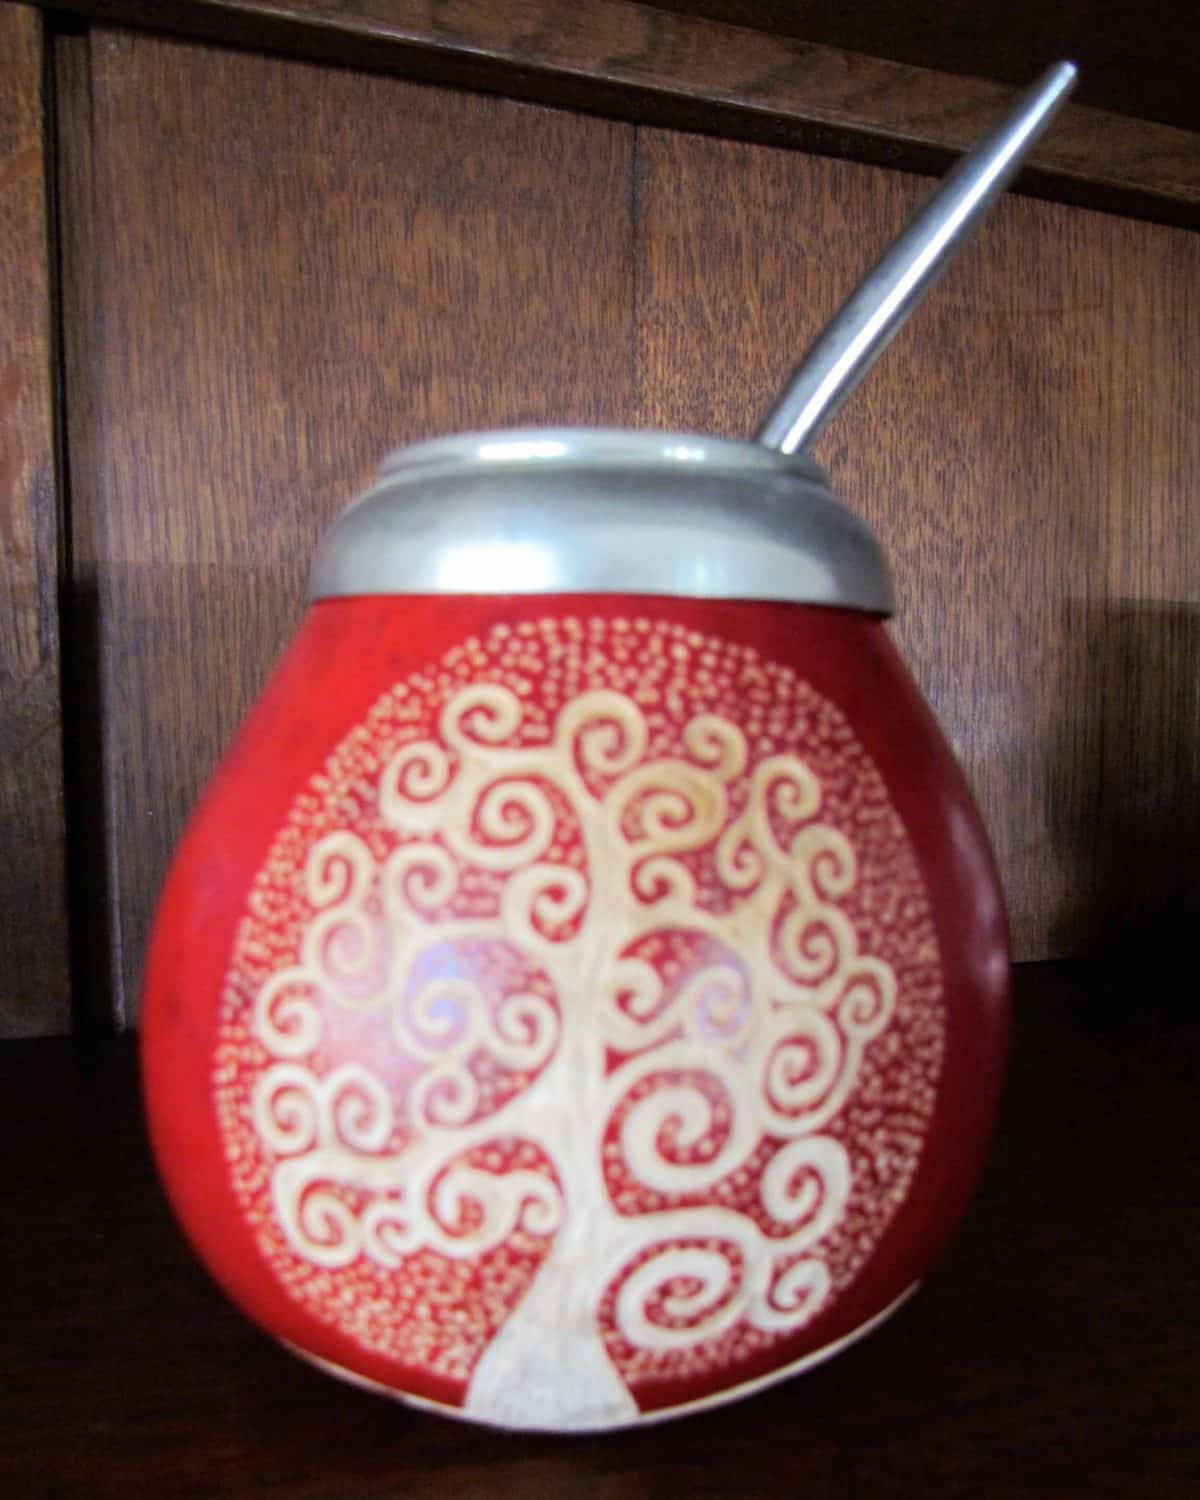 Dyed and Carved Gourd Mate with Bombilla